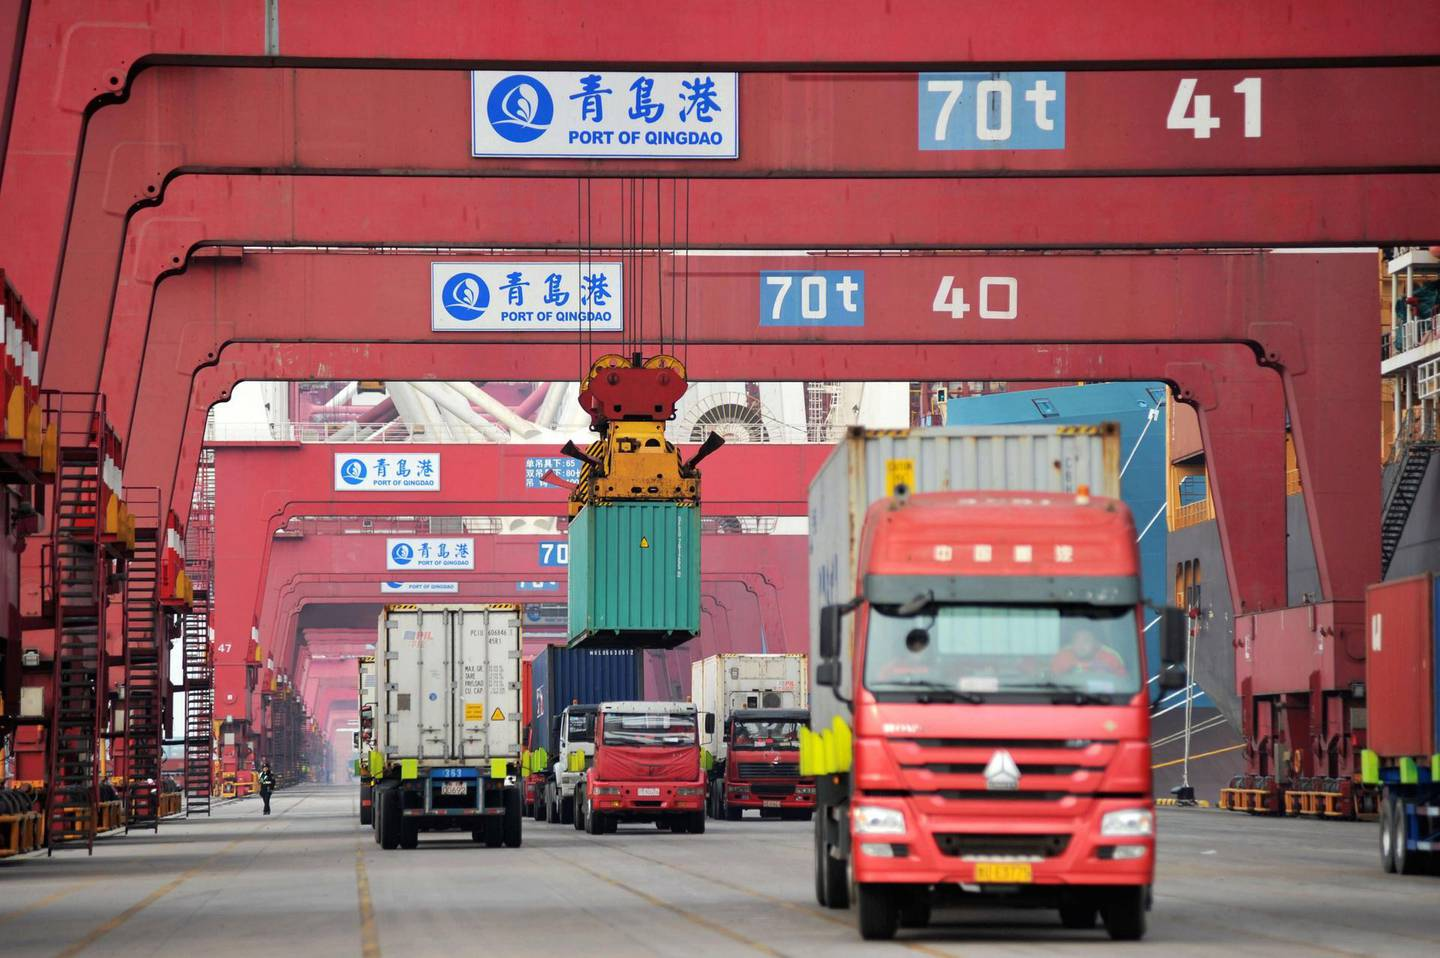 epa06644666 (FILE) - Trucks transport containers at a port in Qingdao, Shandong province, China, 08 March 2018 (issued 04 April 2018). China will place 25 percent tariffs on a list of 106 US goods, in a retaliatory action against the US's new tariff on Chinese products.  EPA/YU FANGPING CHINA OUT